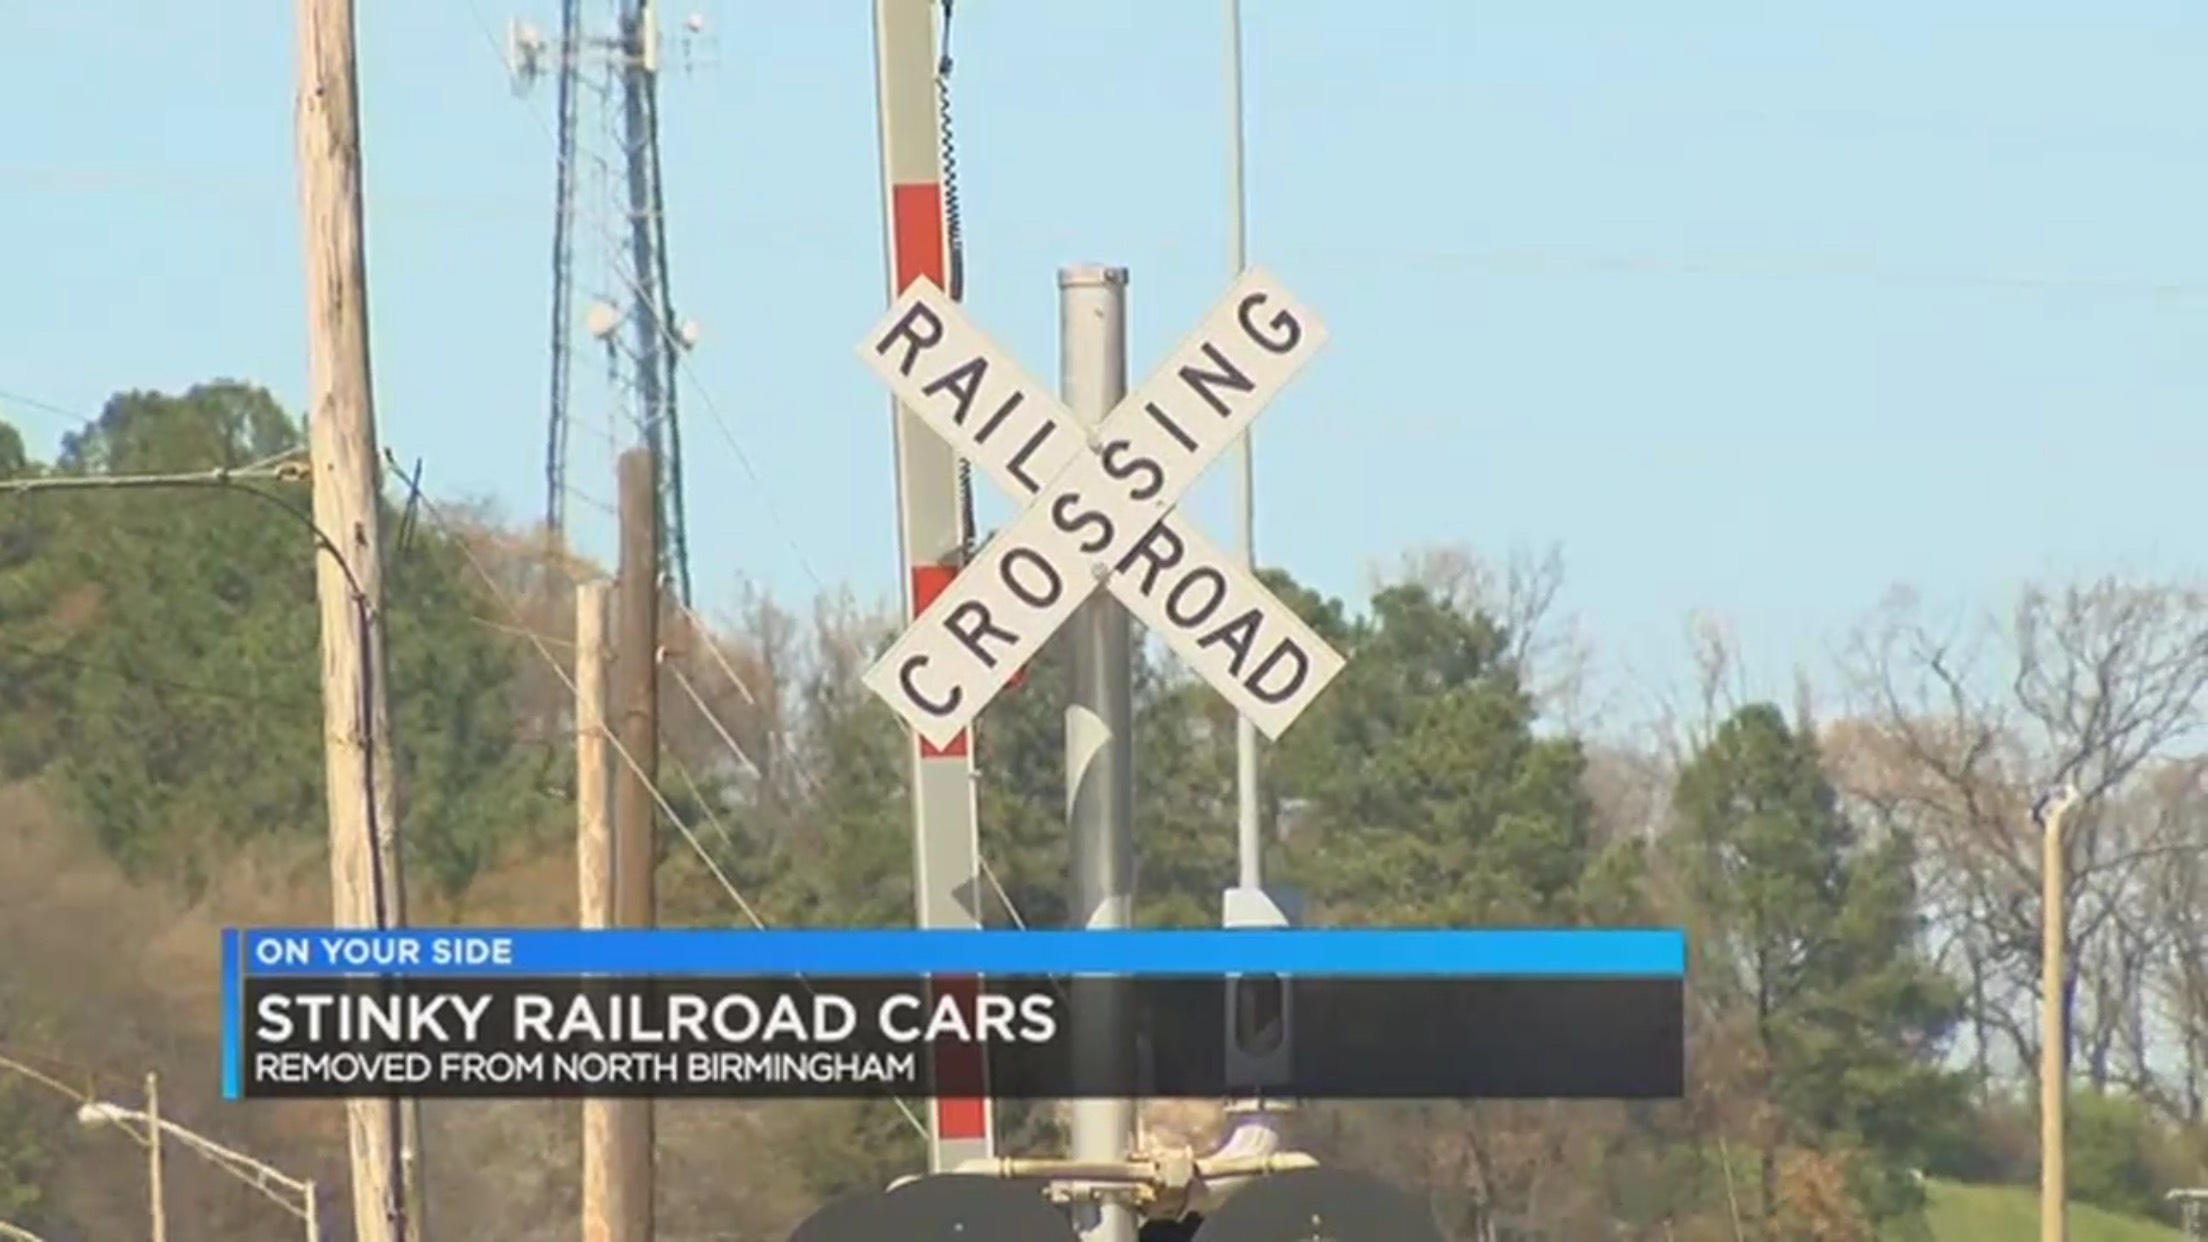 Stinky Railroad Cars Removed From North Birmingham